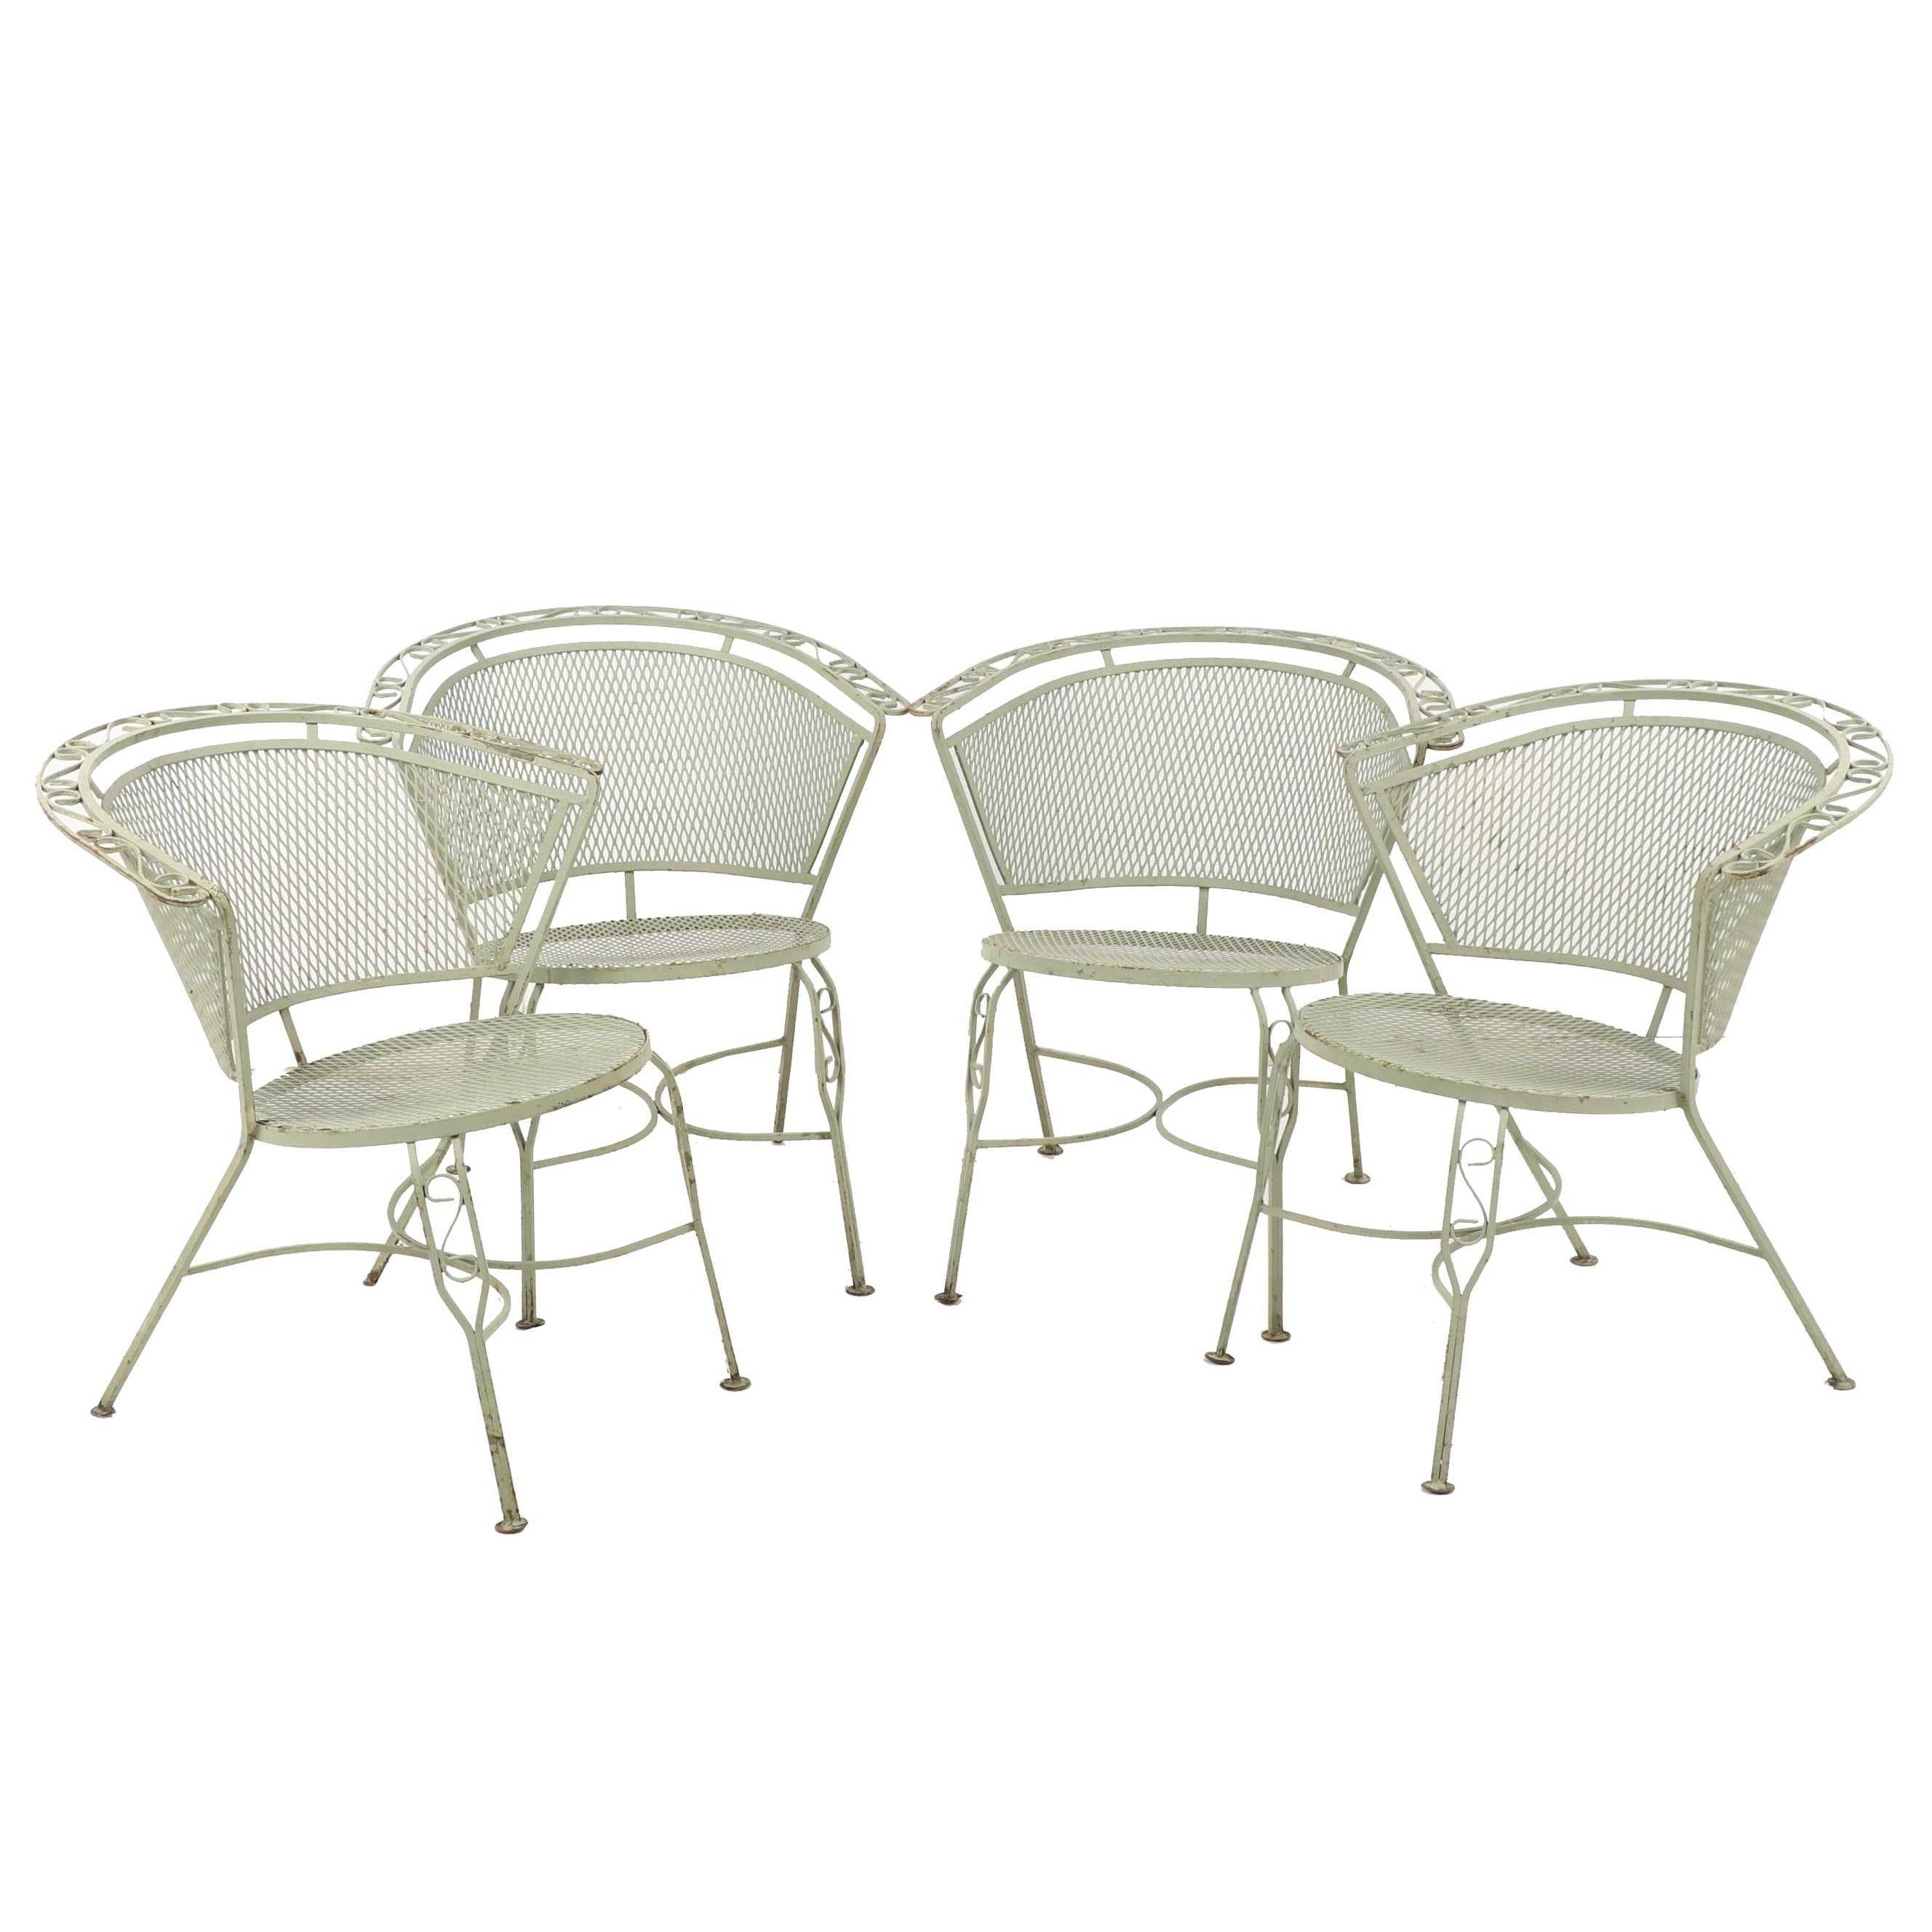 Four Green Metal Patio Chairs